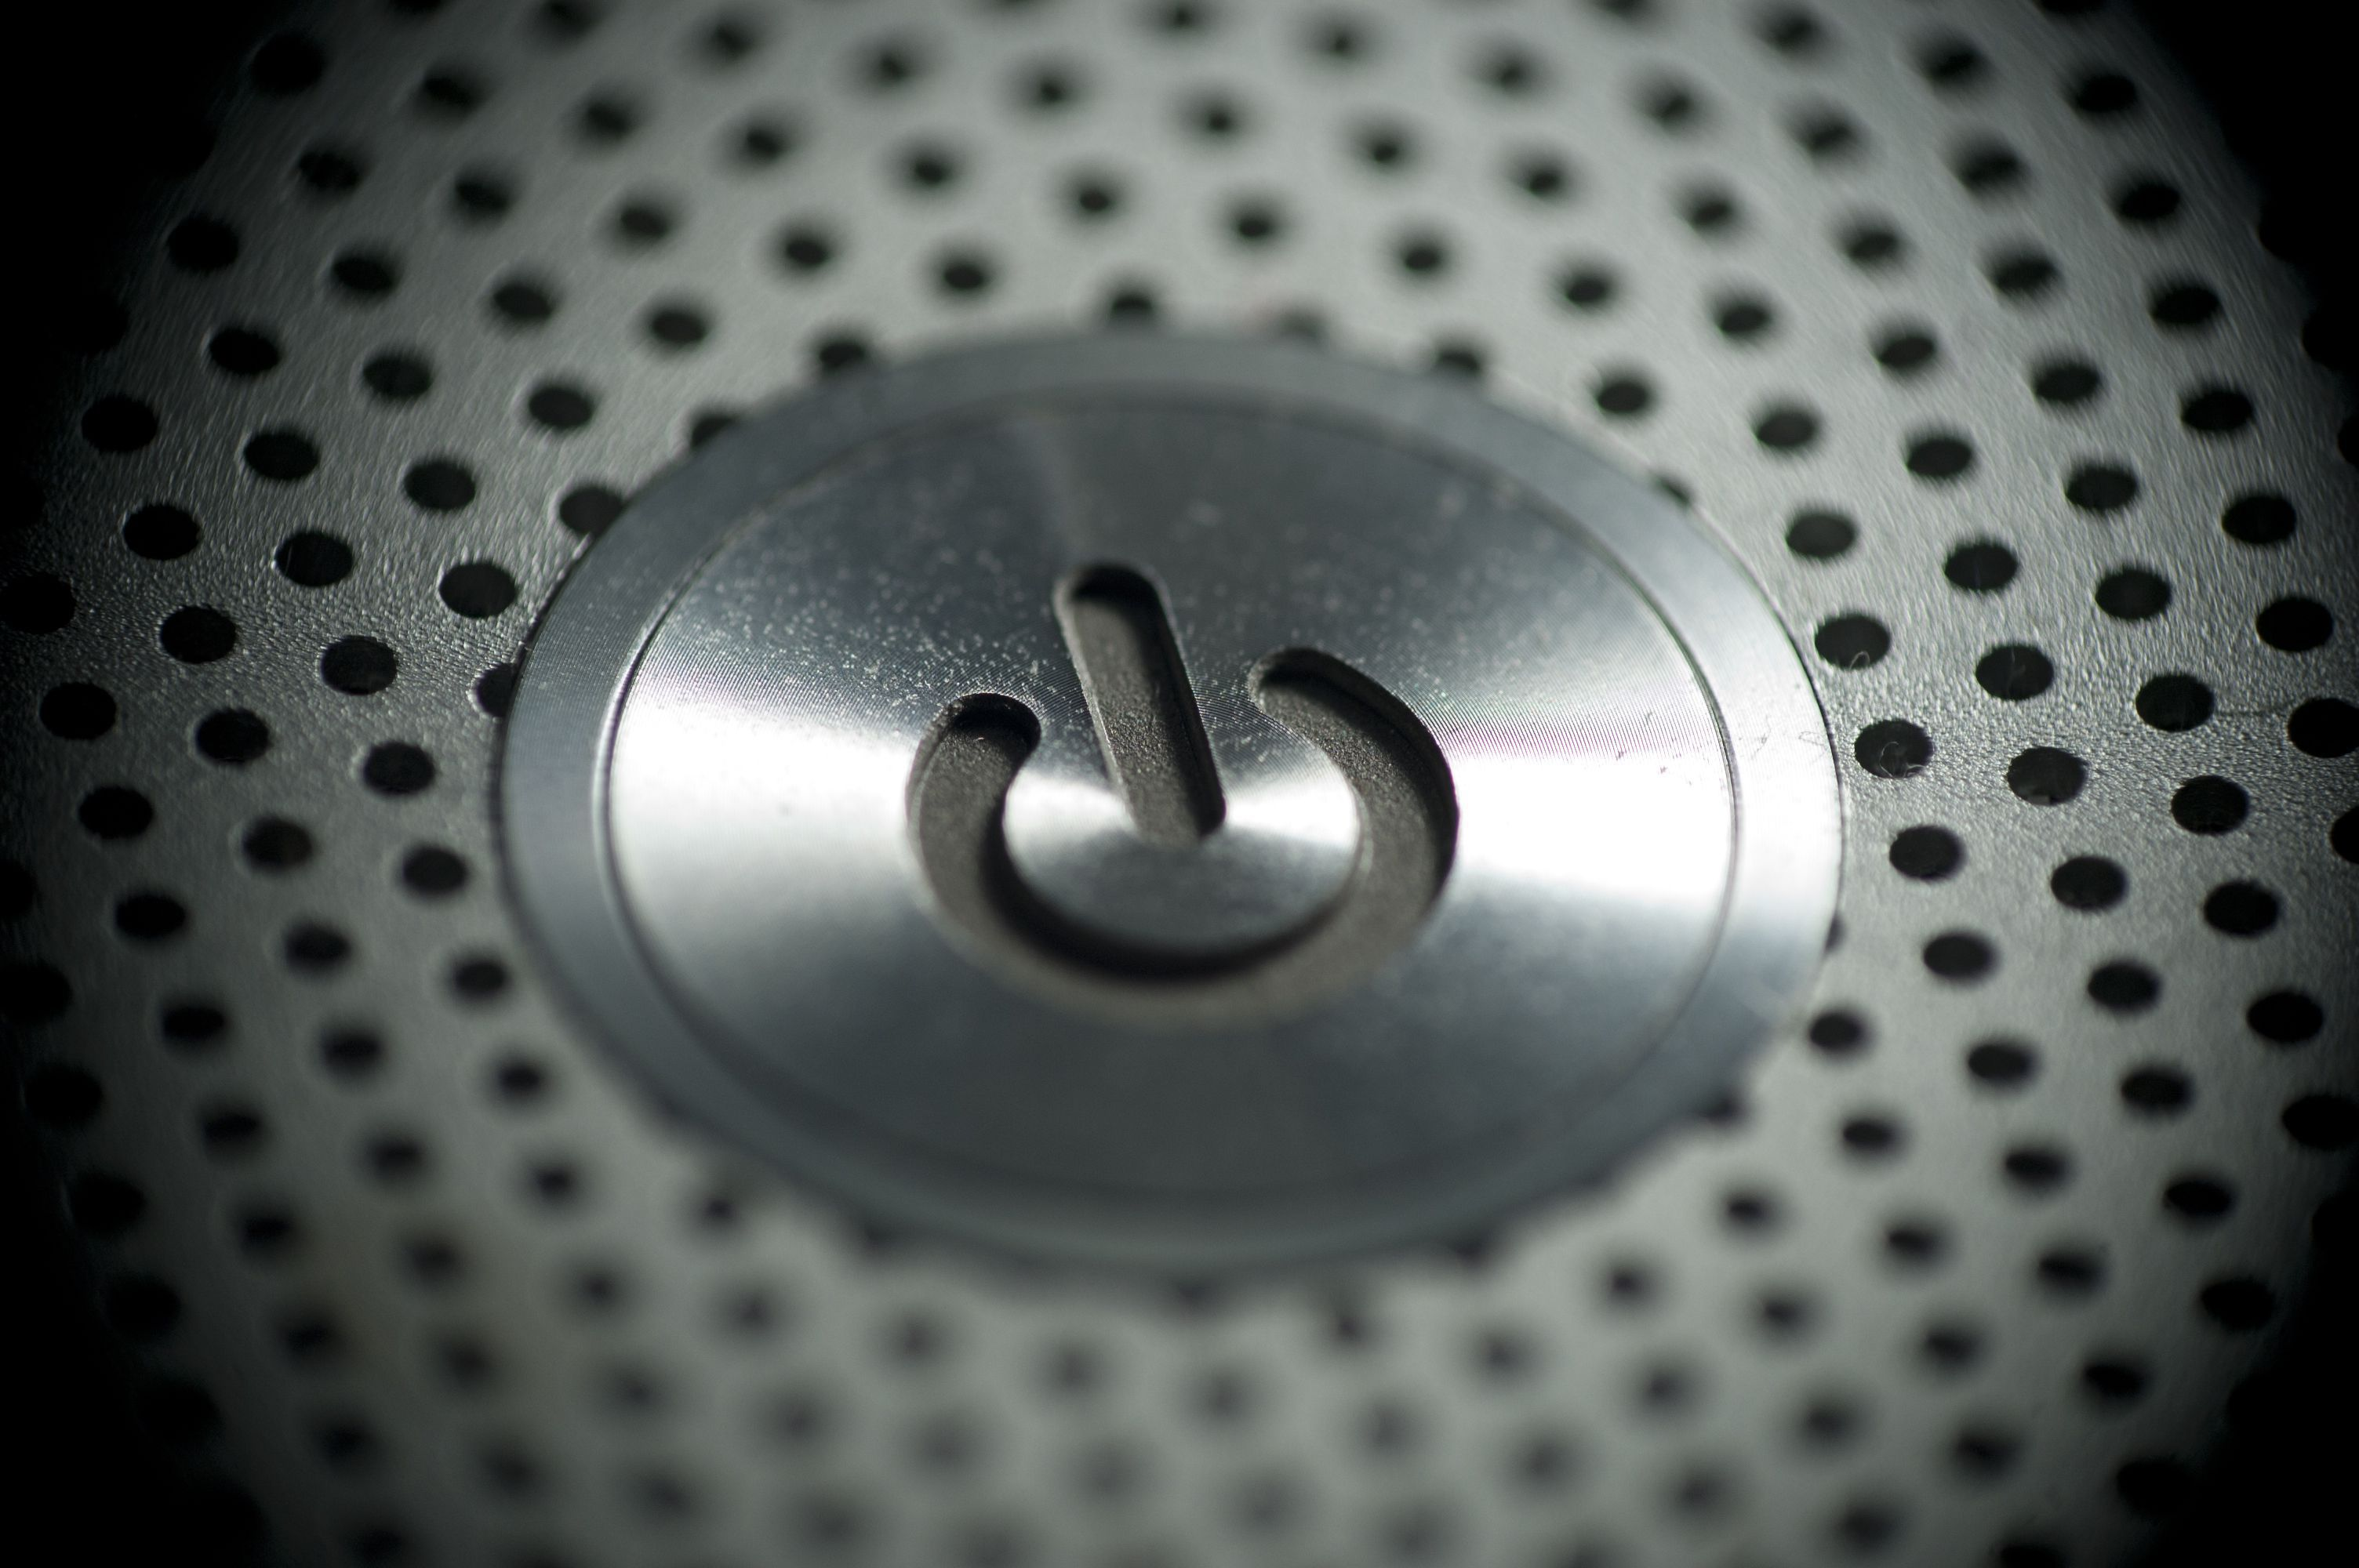 Power Button Images